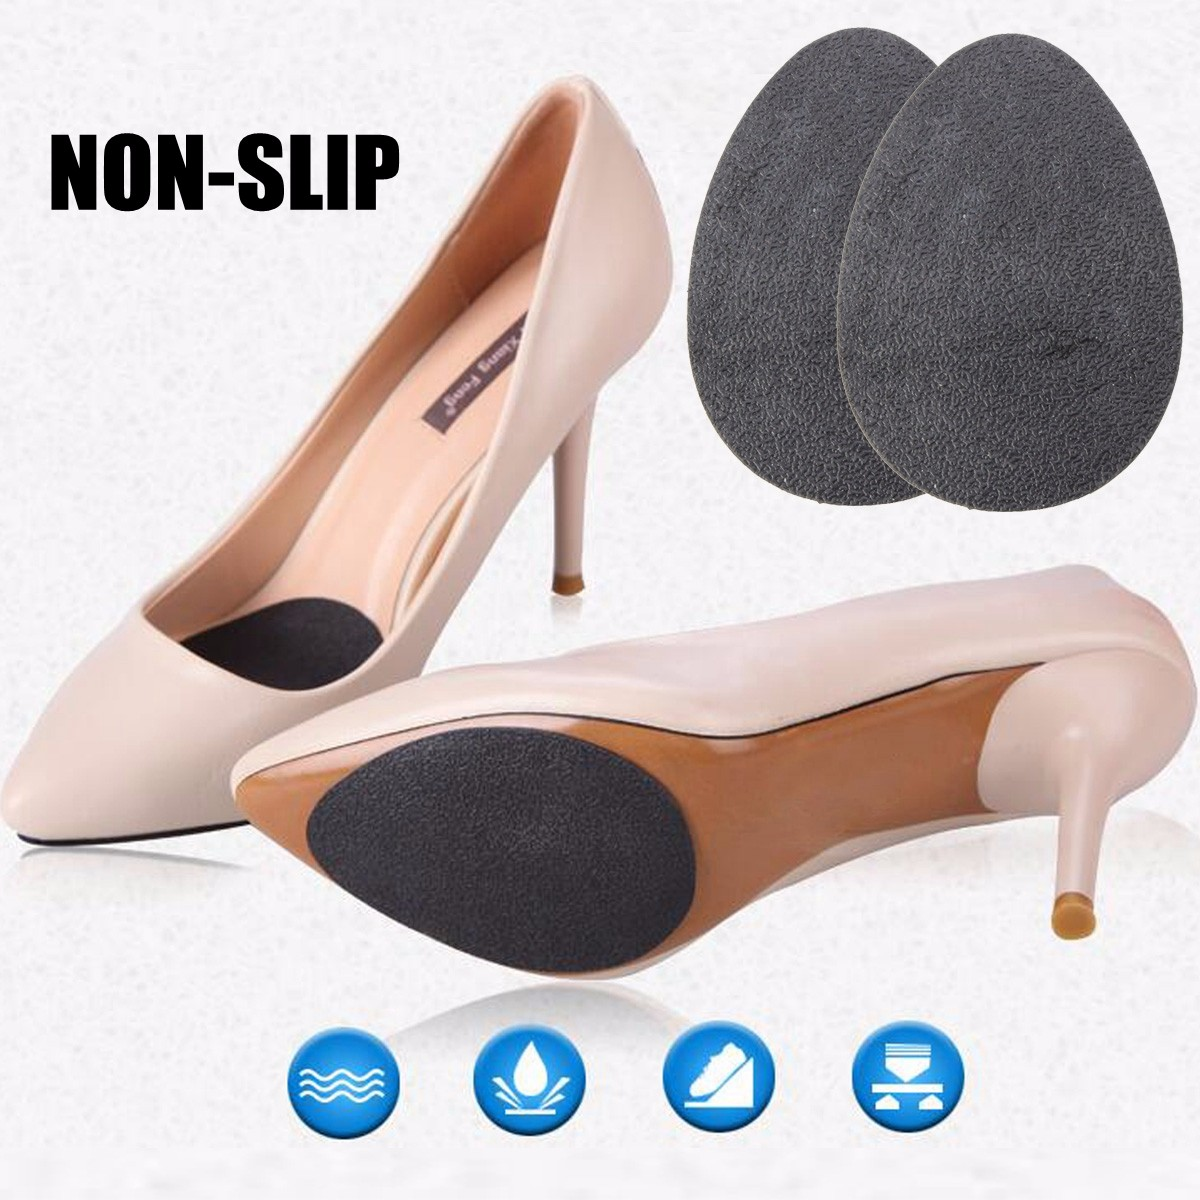 Non Slip Grip Pads For Shoes Canada